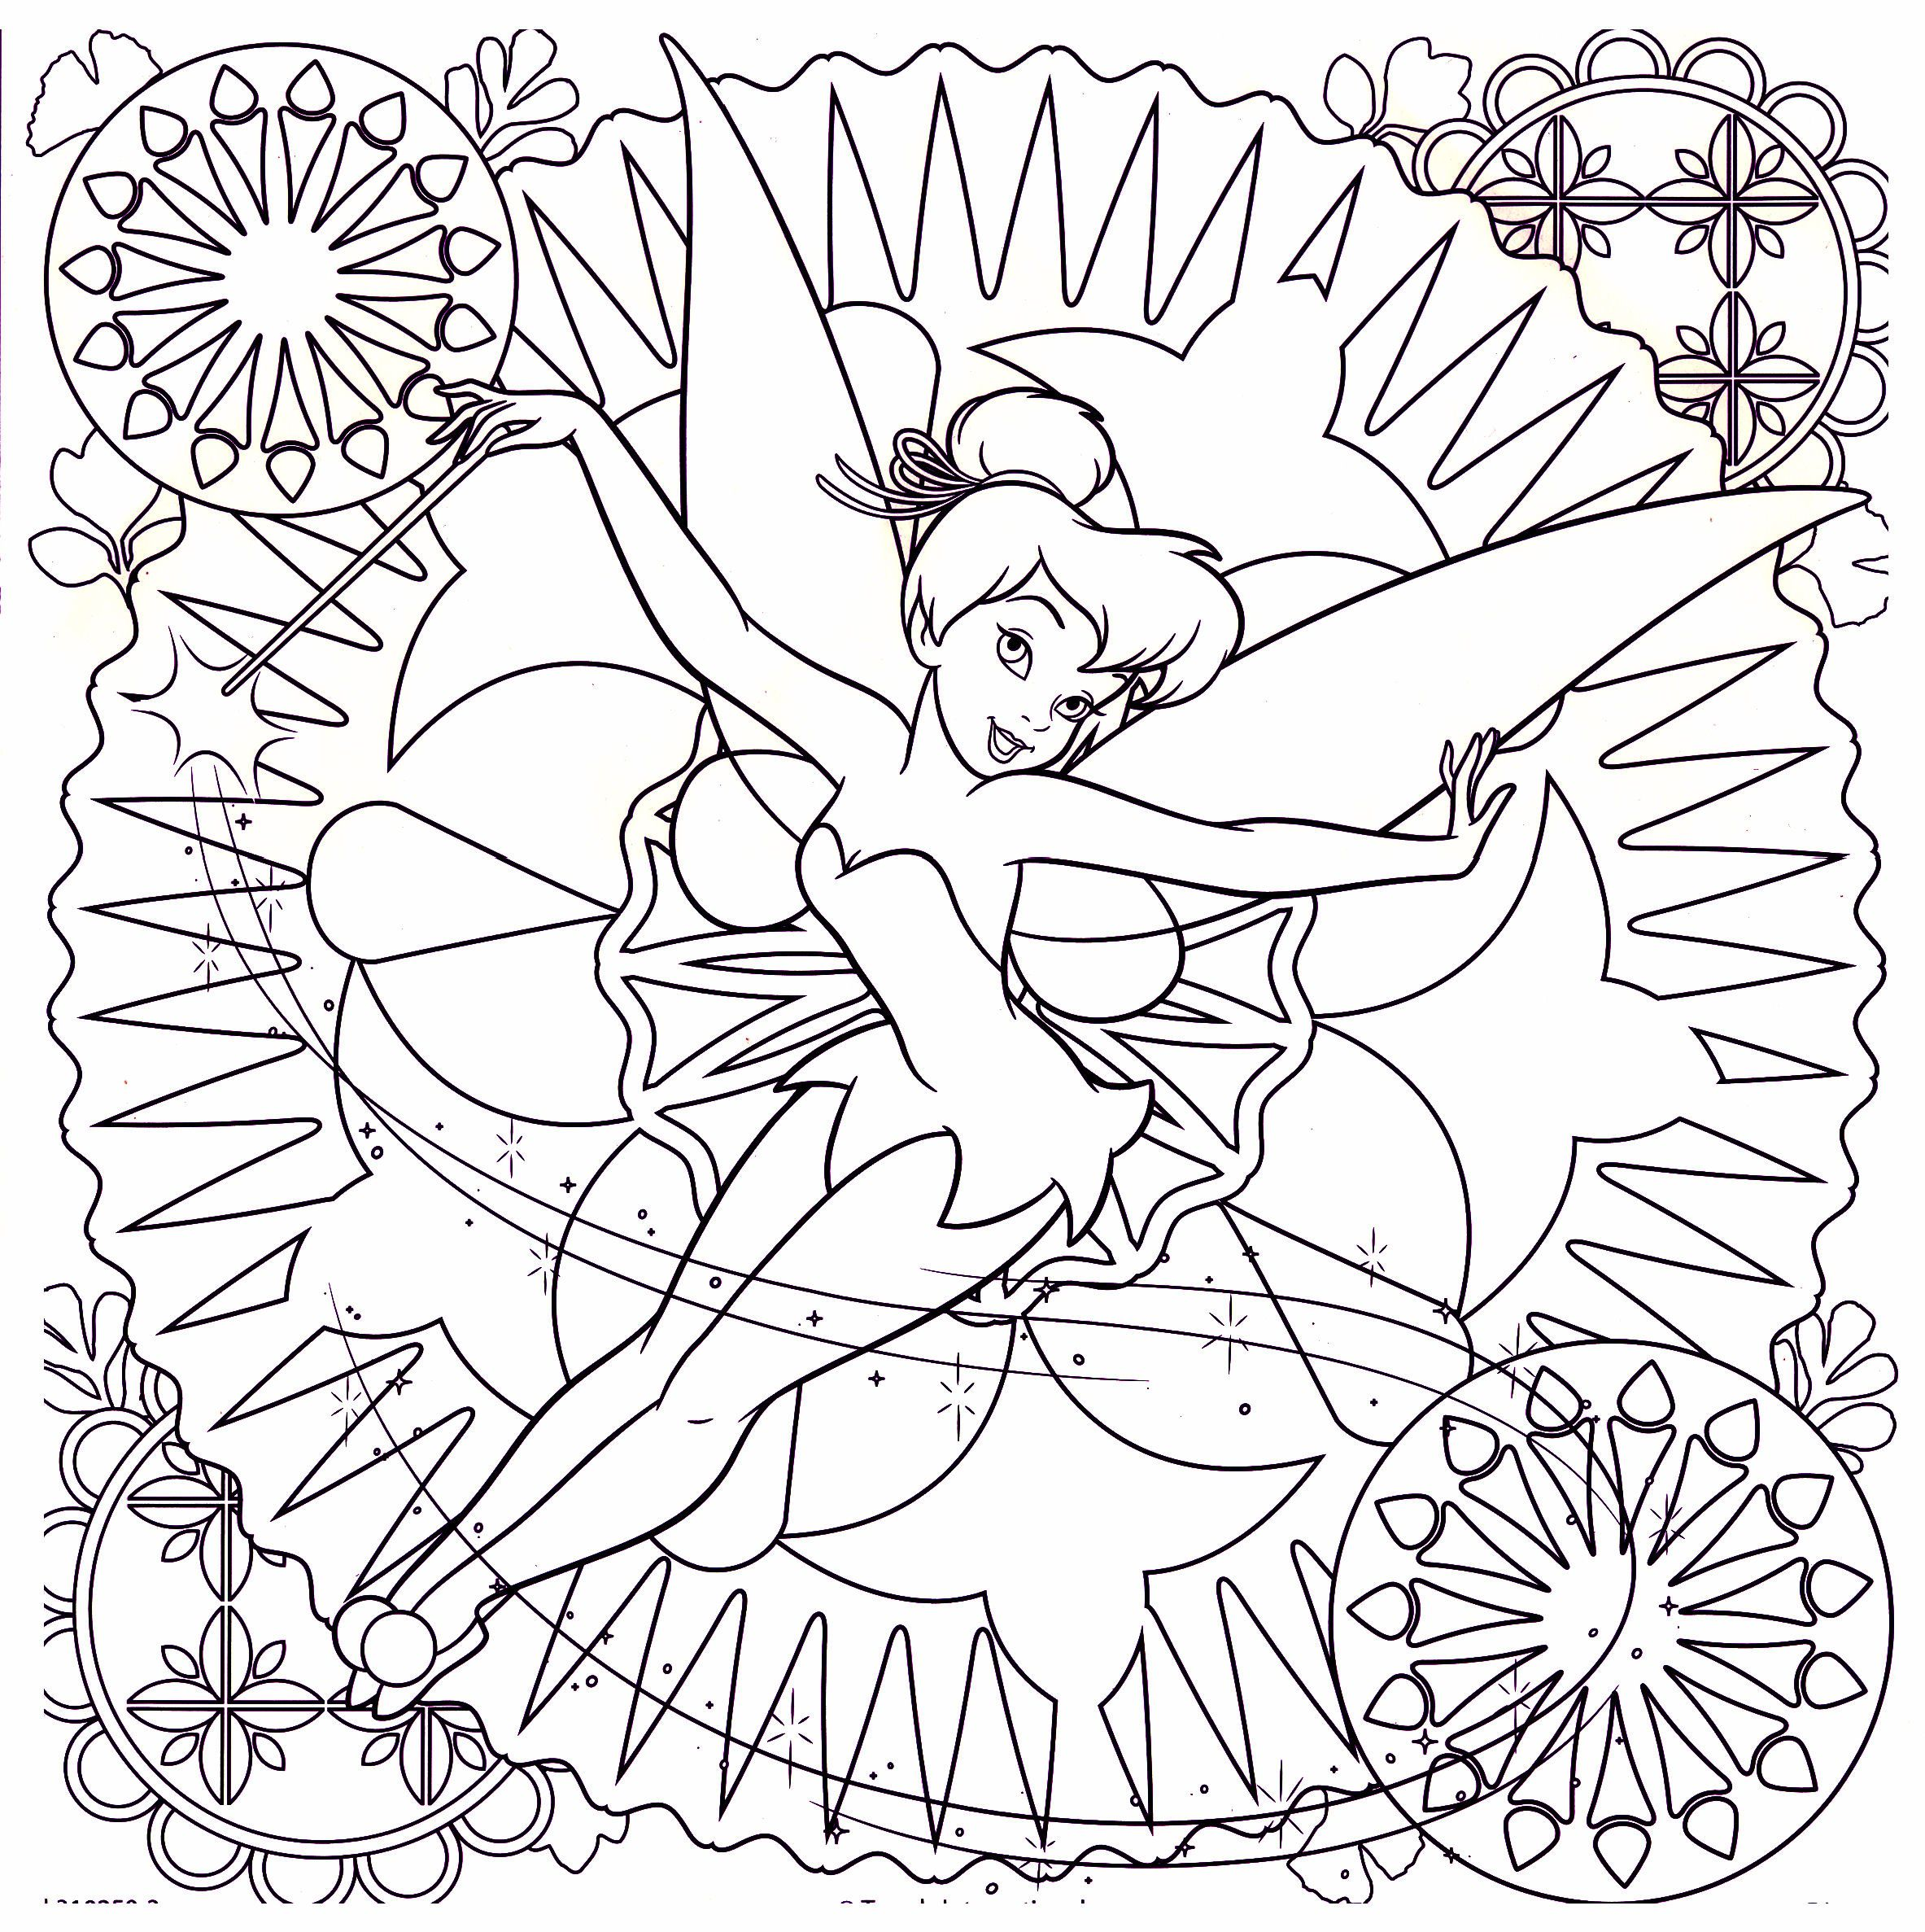 Tinkerbell Difficult Coloring Page Tinkerbell Coloring Pages Disney Coloring Pages Butterfly Coloring Page